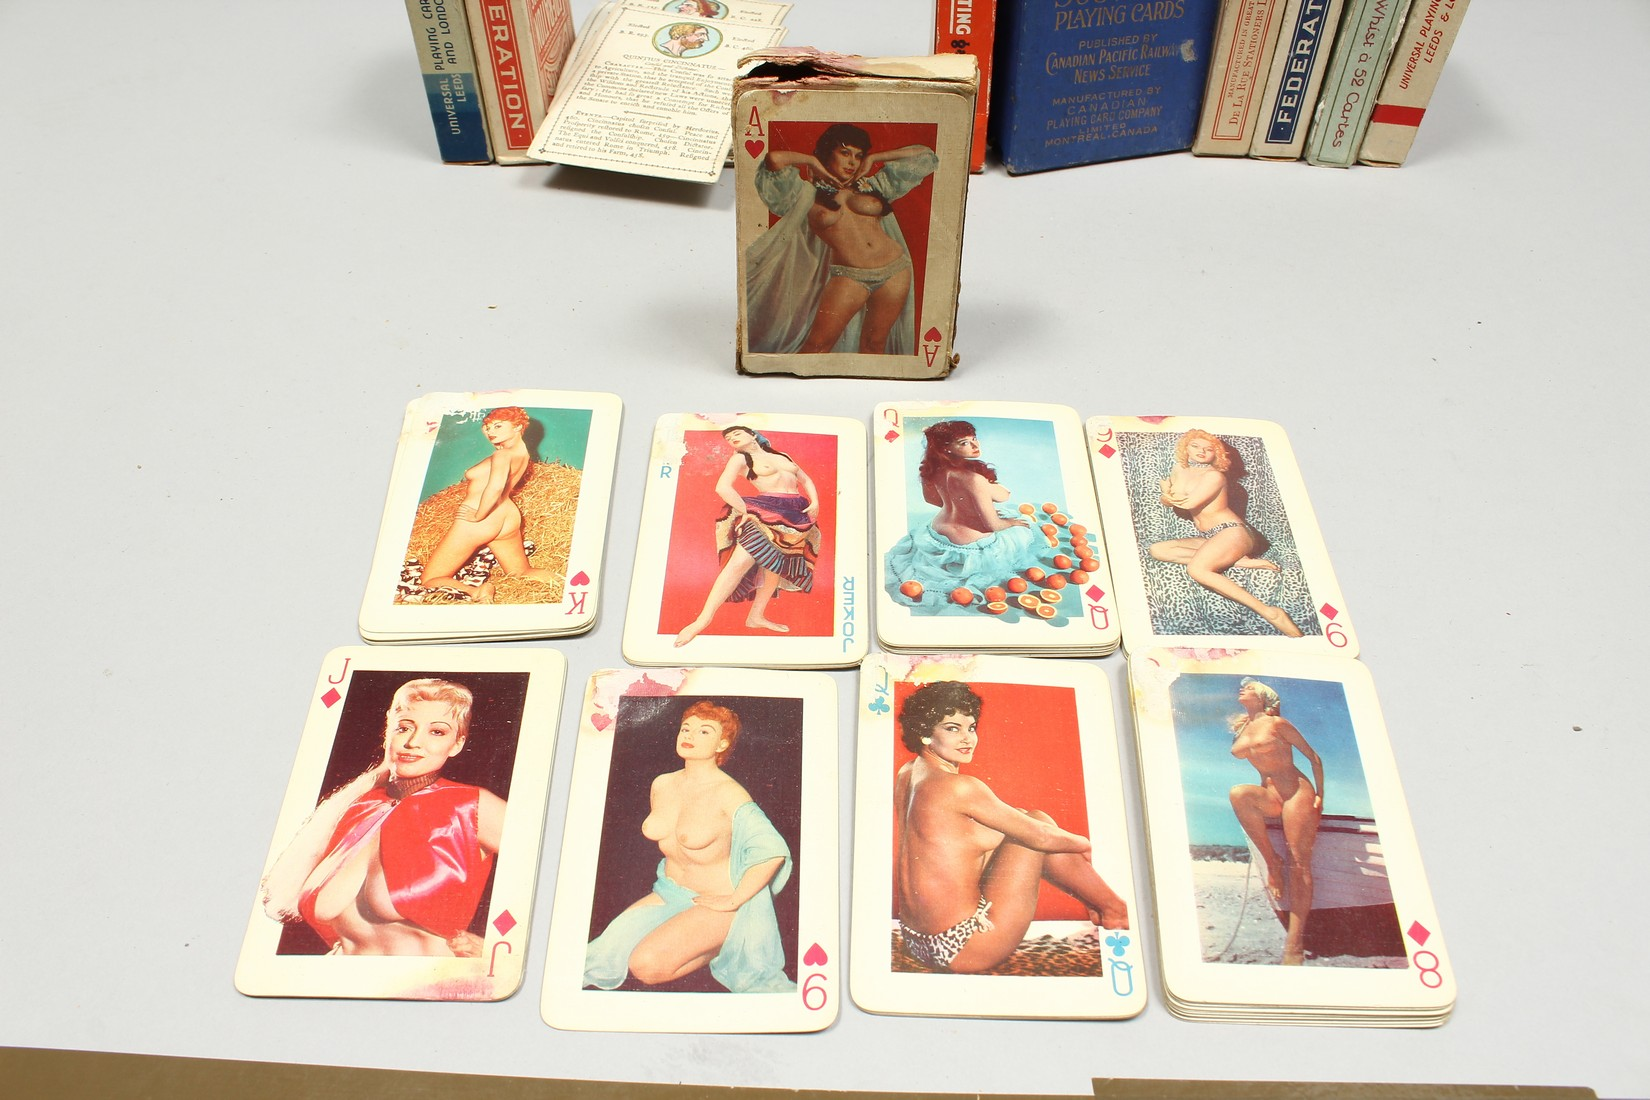 A COLLECTION OF VARIOUS PLAYING CARDS. - Image 10 of 16